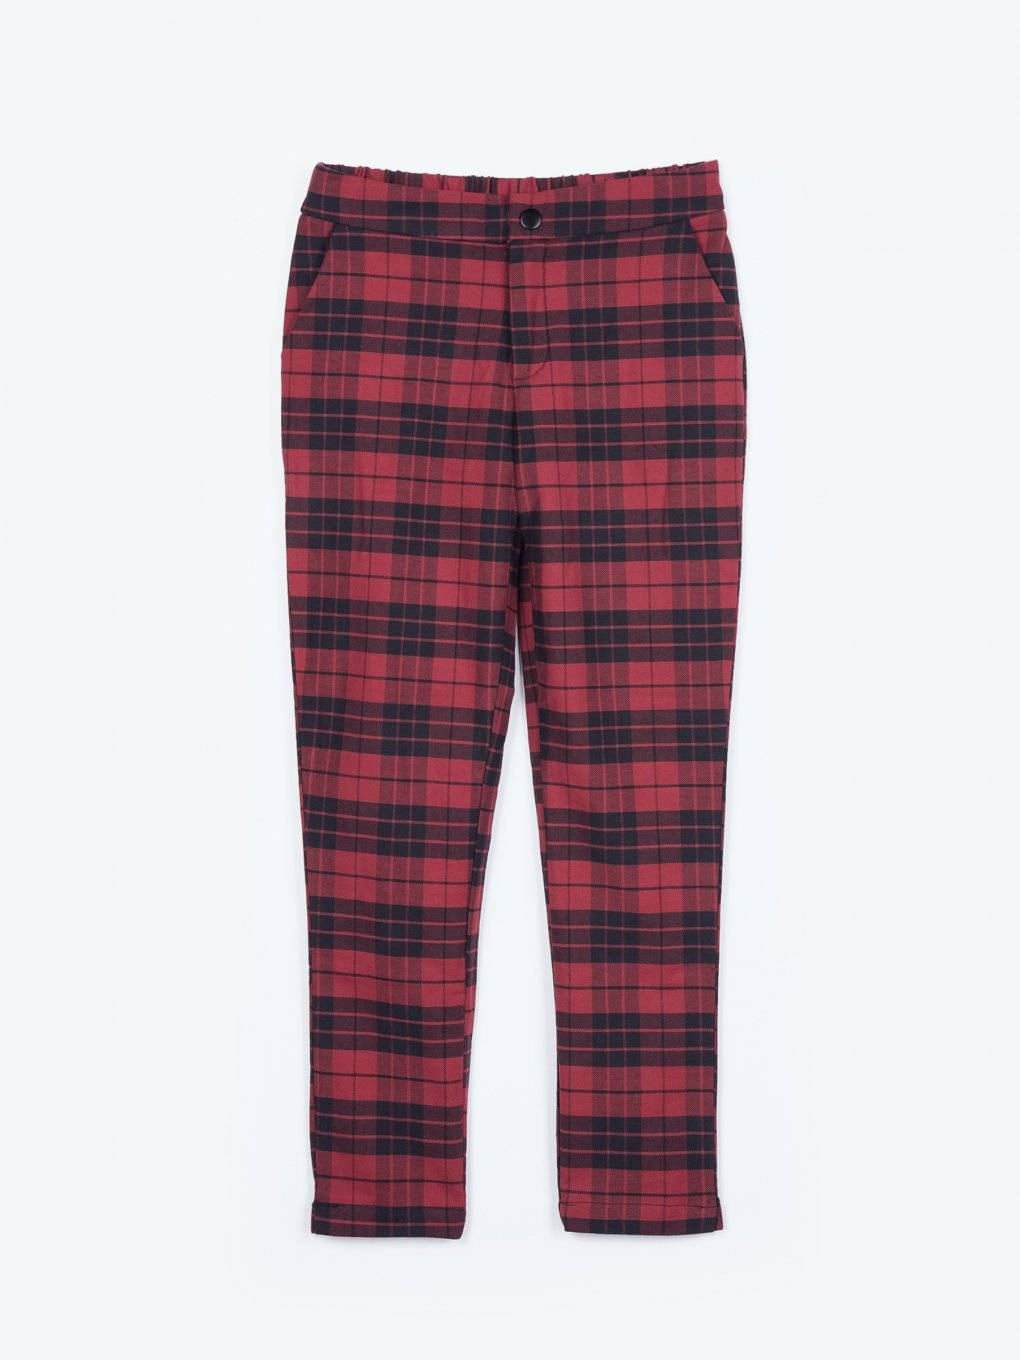 Plaid stretch trousers